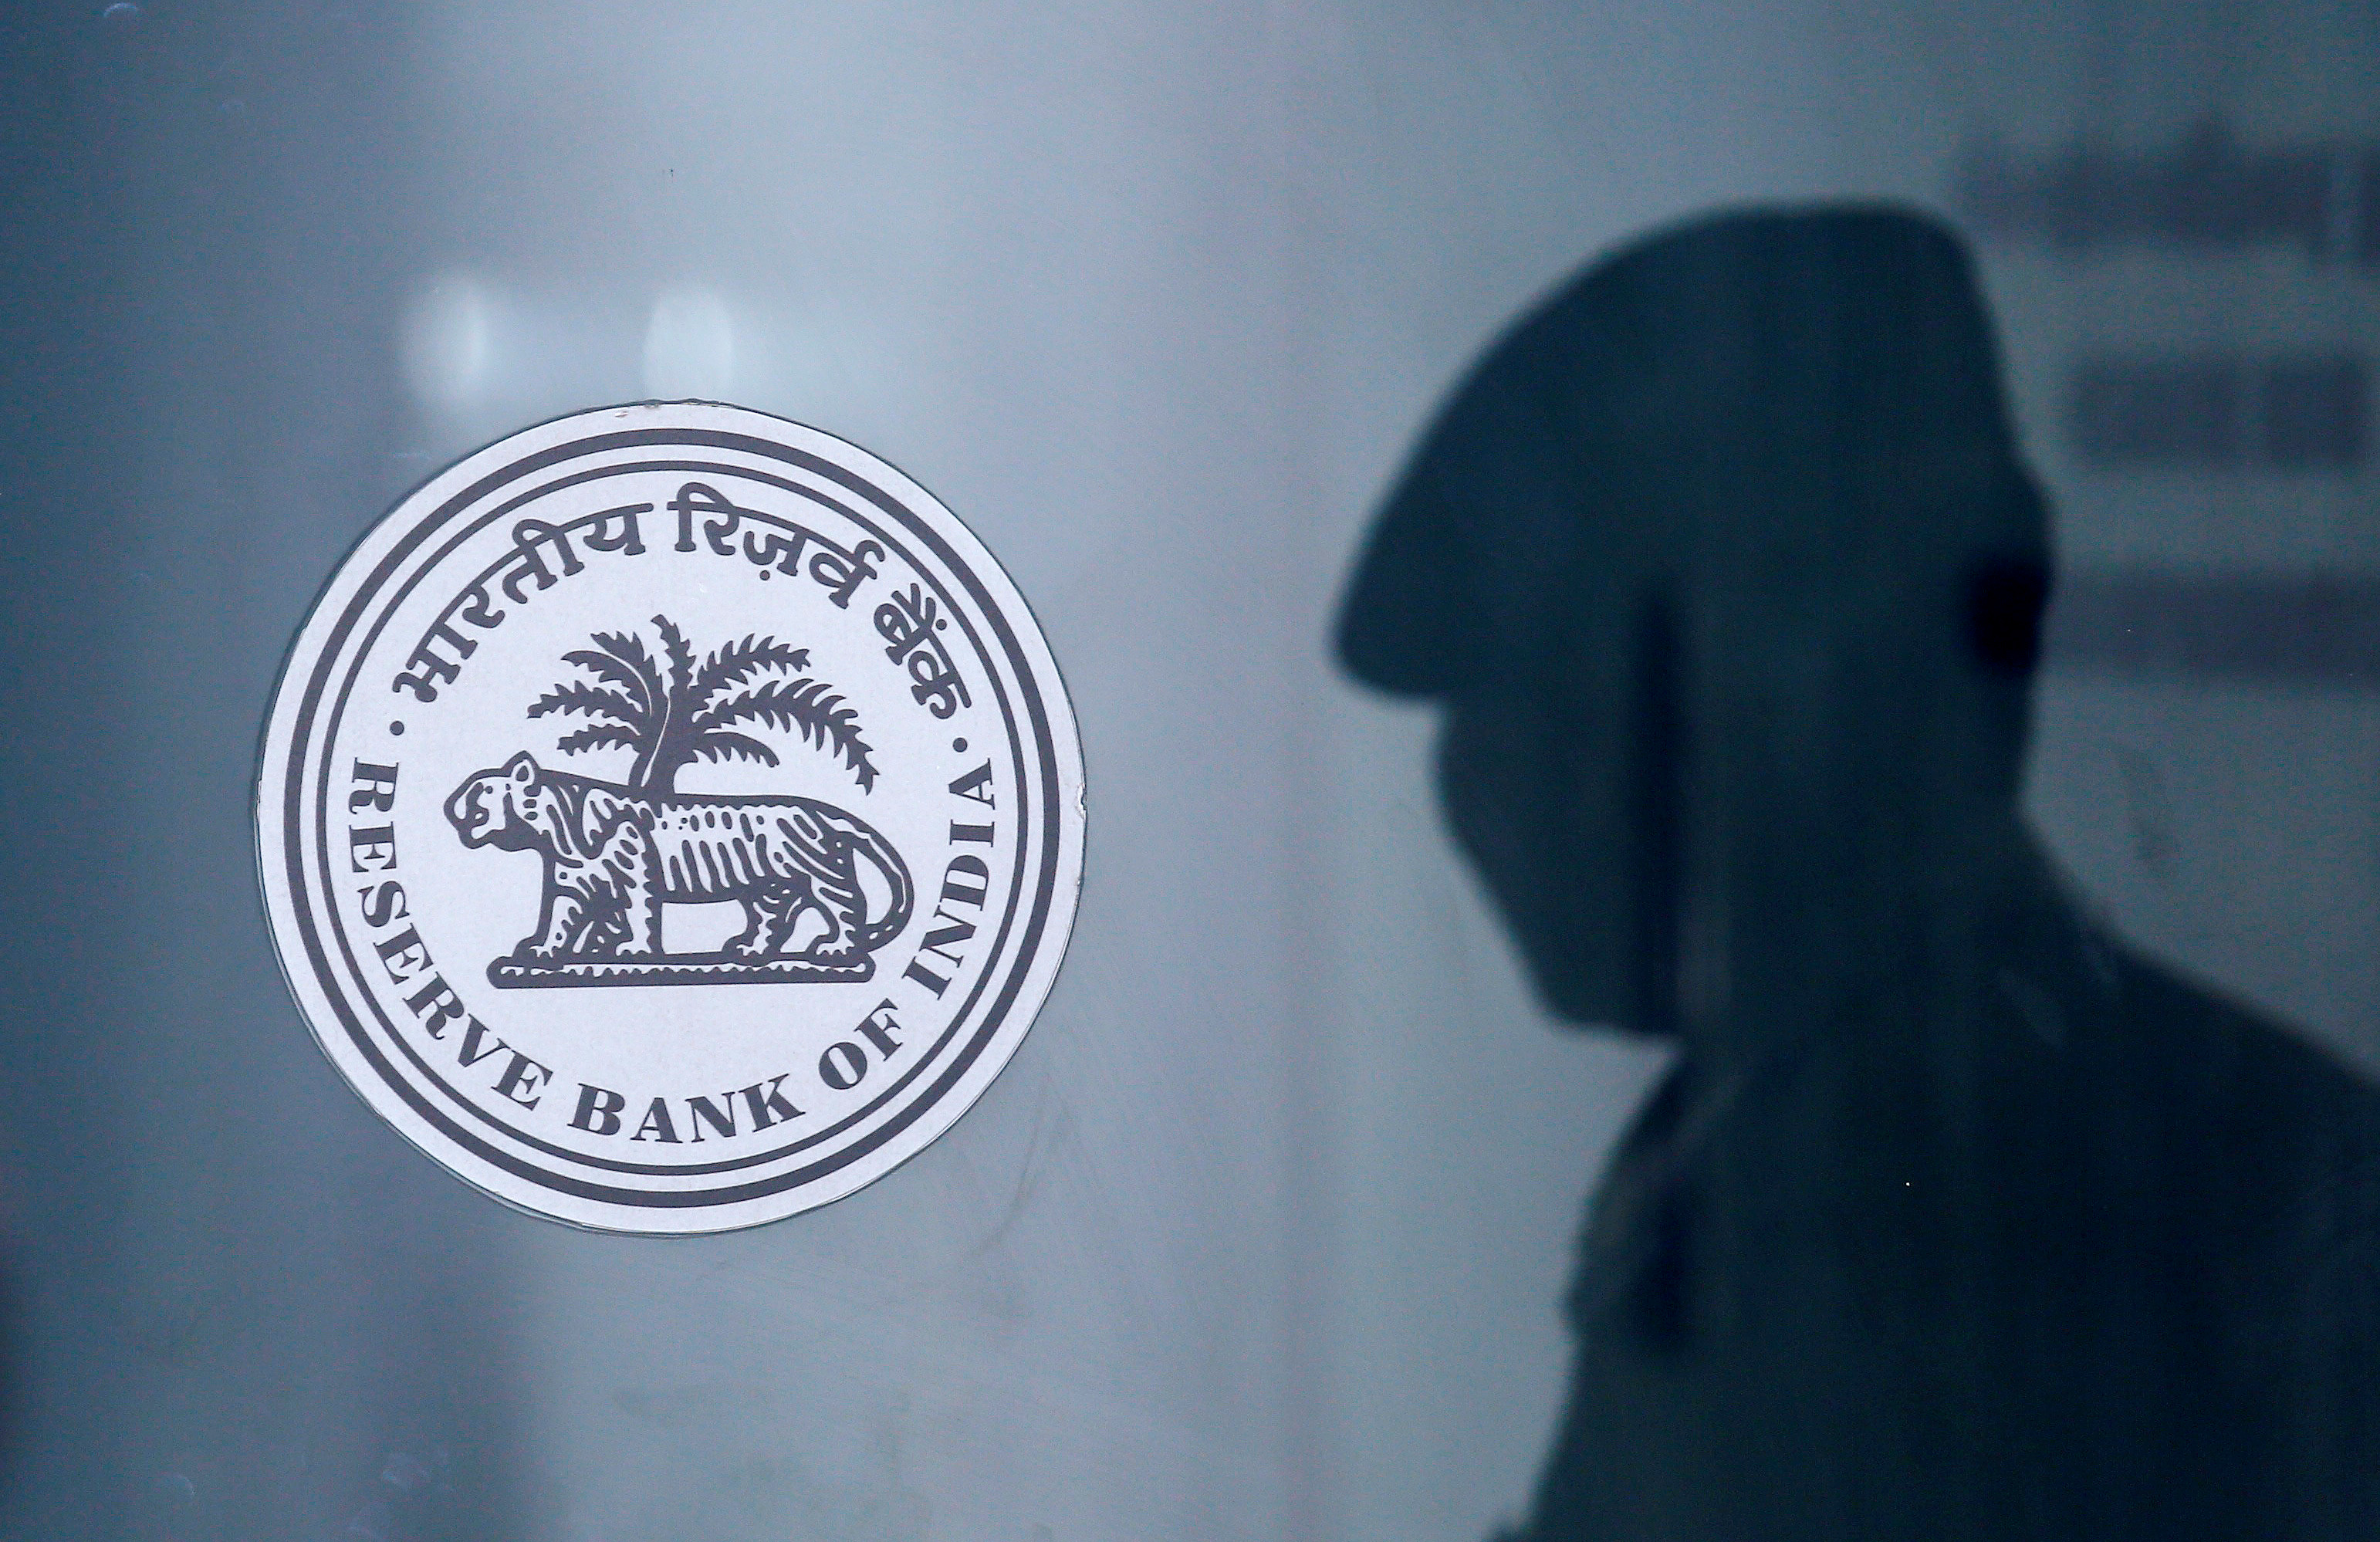 A security guard's reflection is seen next to the logo of the Reserve Bank Of India (RBI) at the RBI headquarters in Mumbai, India, June 6, 2019. REUTERS/Francis Mascarenhas